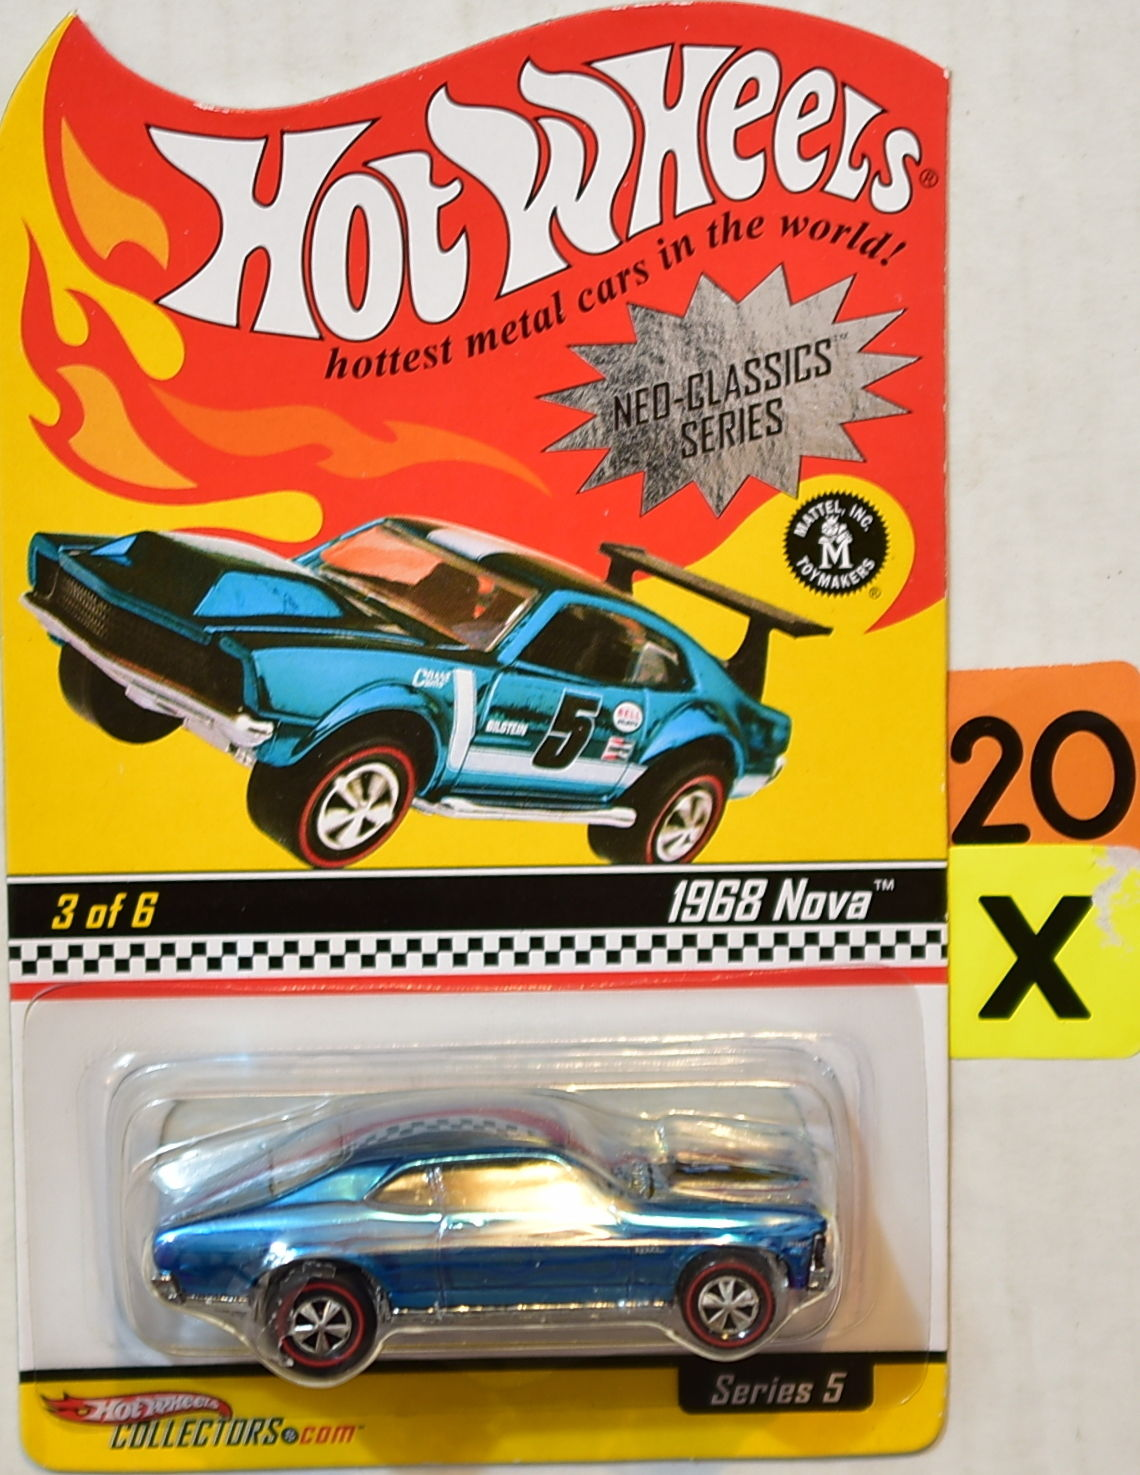 HOT WHEELS NEO-CLASSICS SERIES 5 #3 OF 6 1968 NOVA